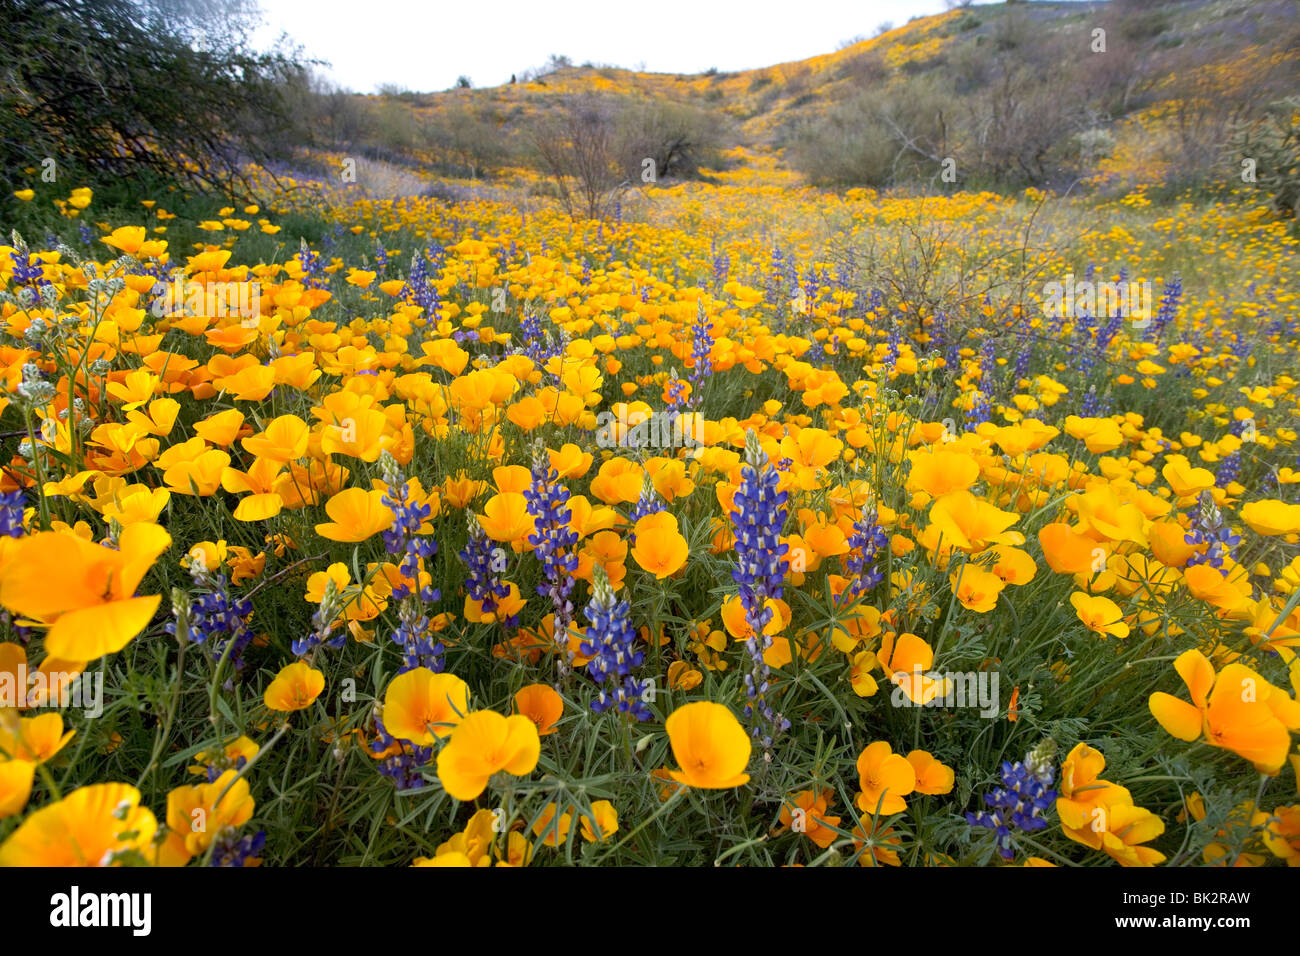 A large field of orange and yellow poppies and wildflowers at Catalina State Park near Tucson, Arizona. - Stock Image